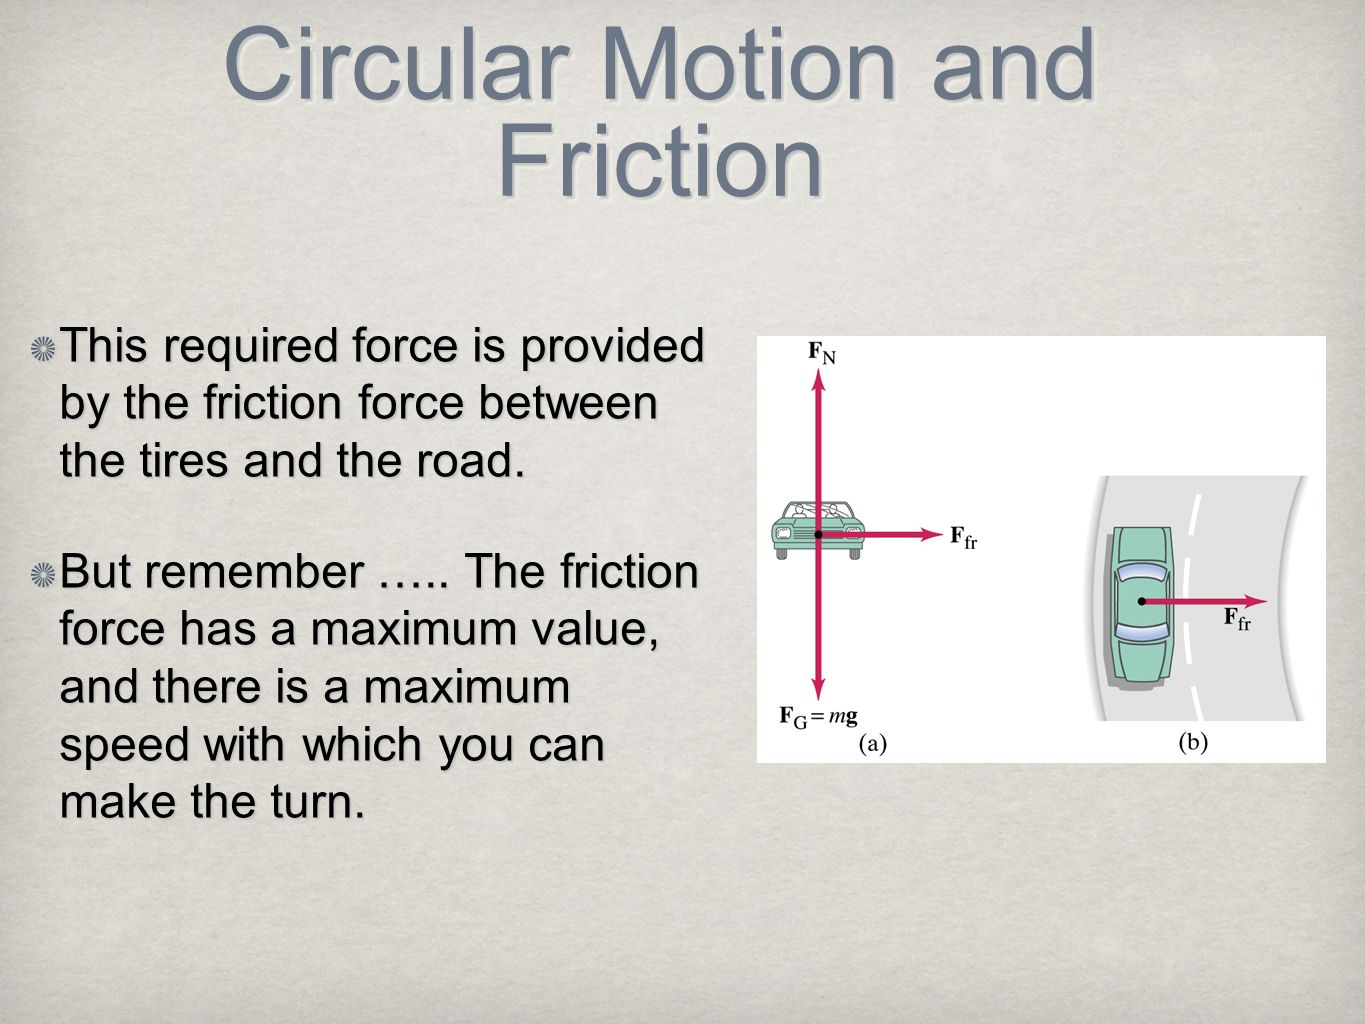 Circular Motion and Friction